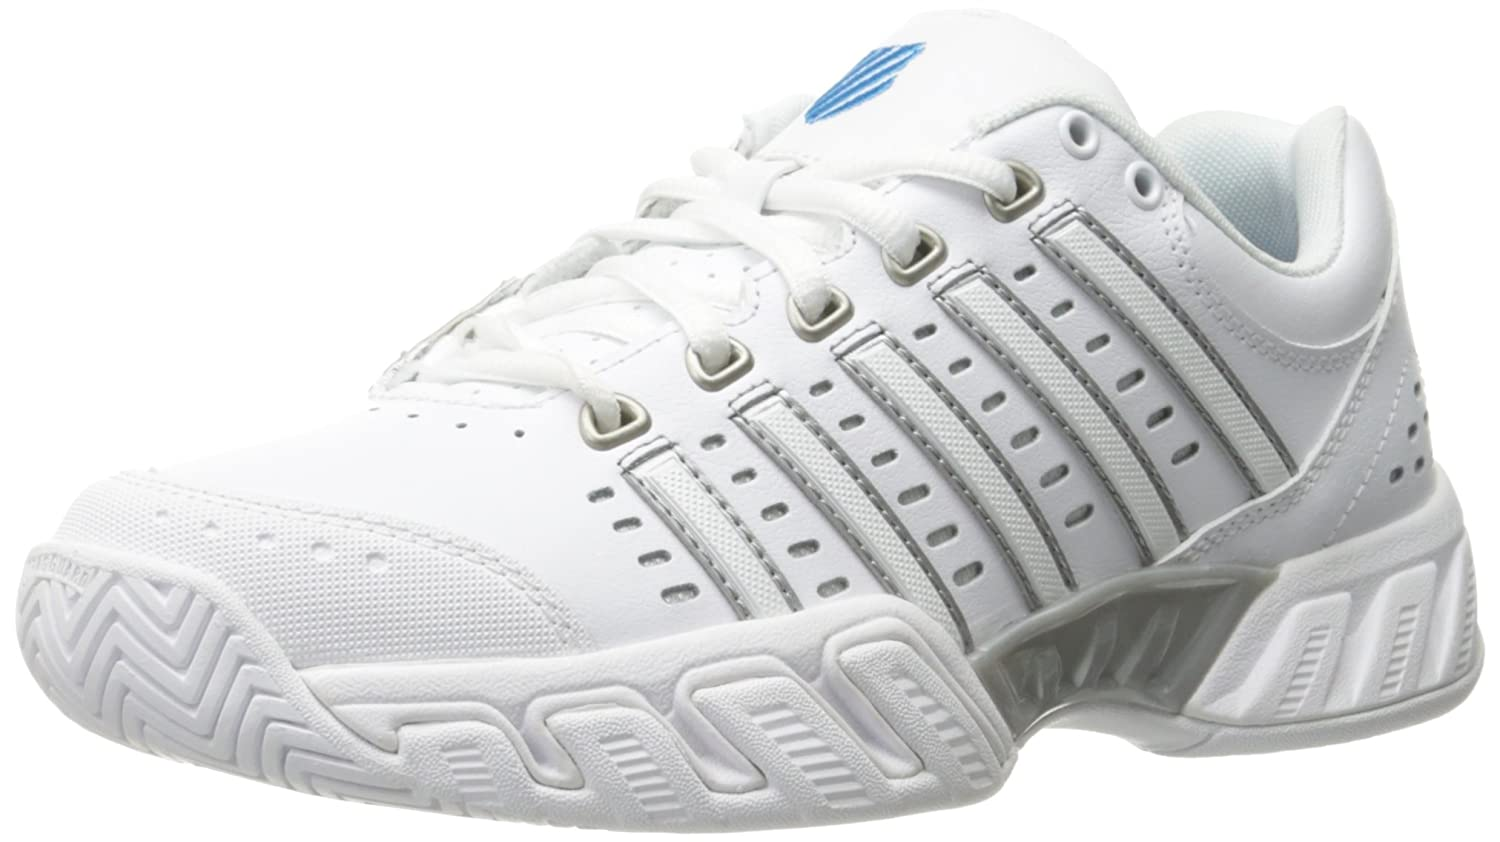 K-Swiss Women's Bigshot Light Tennis Shoe B01LS81NIU 5 B(M) US|White/Hawaiian Ocean